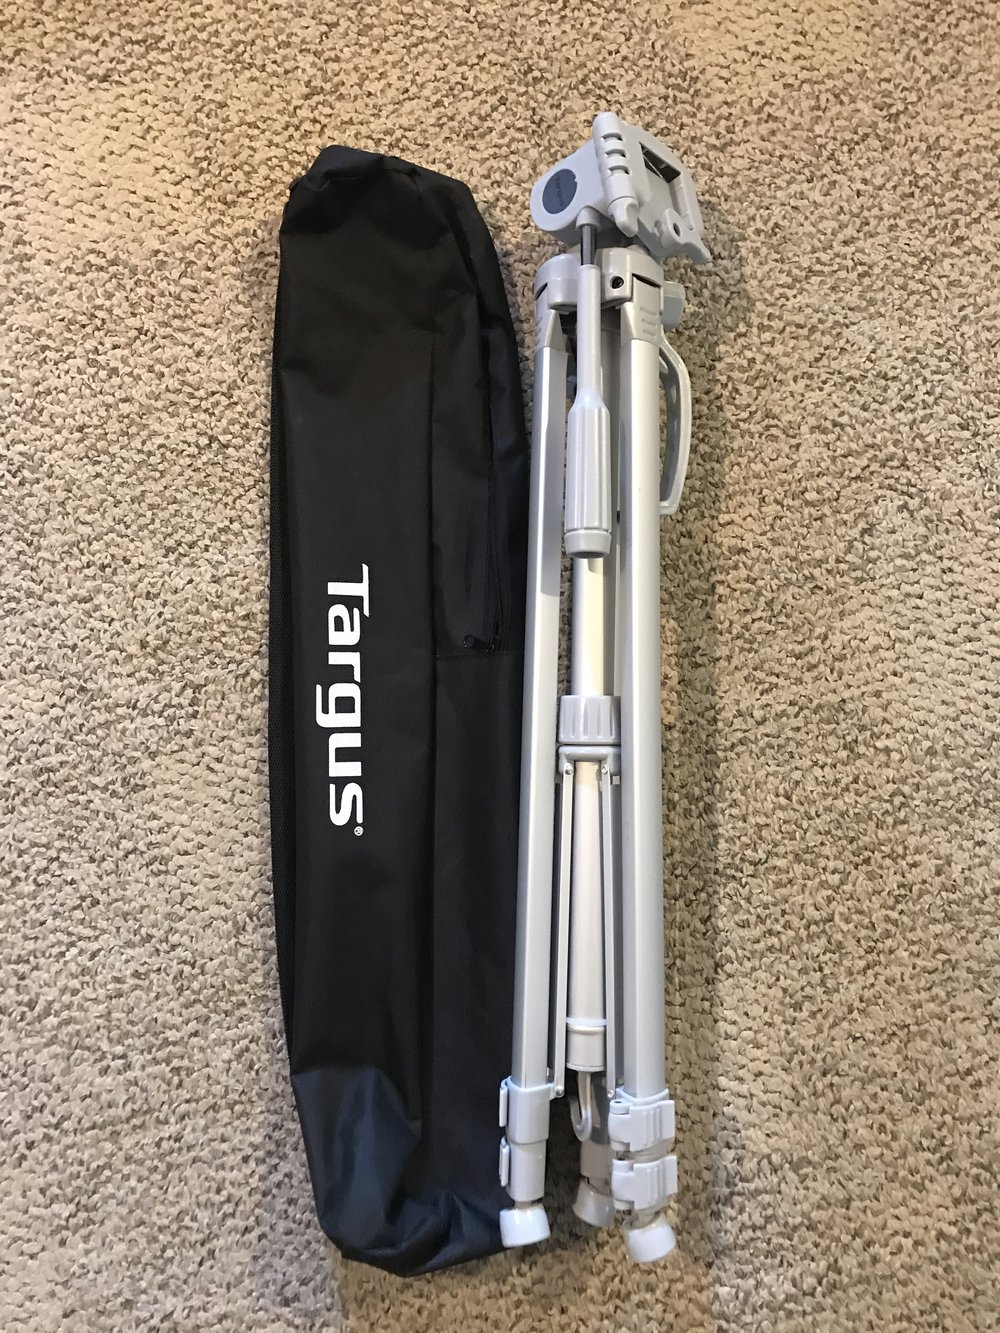 $10 LIKE NEW Targus Tripod - extends to 66''. Has contributed toward some of our best dance memories - the ComeUp Workshops, the Pack't Choreo projects, and more :)RETAIL: $20